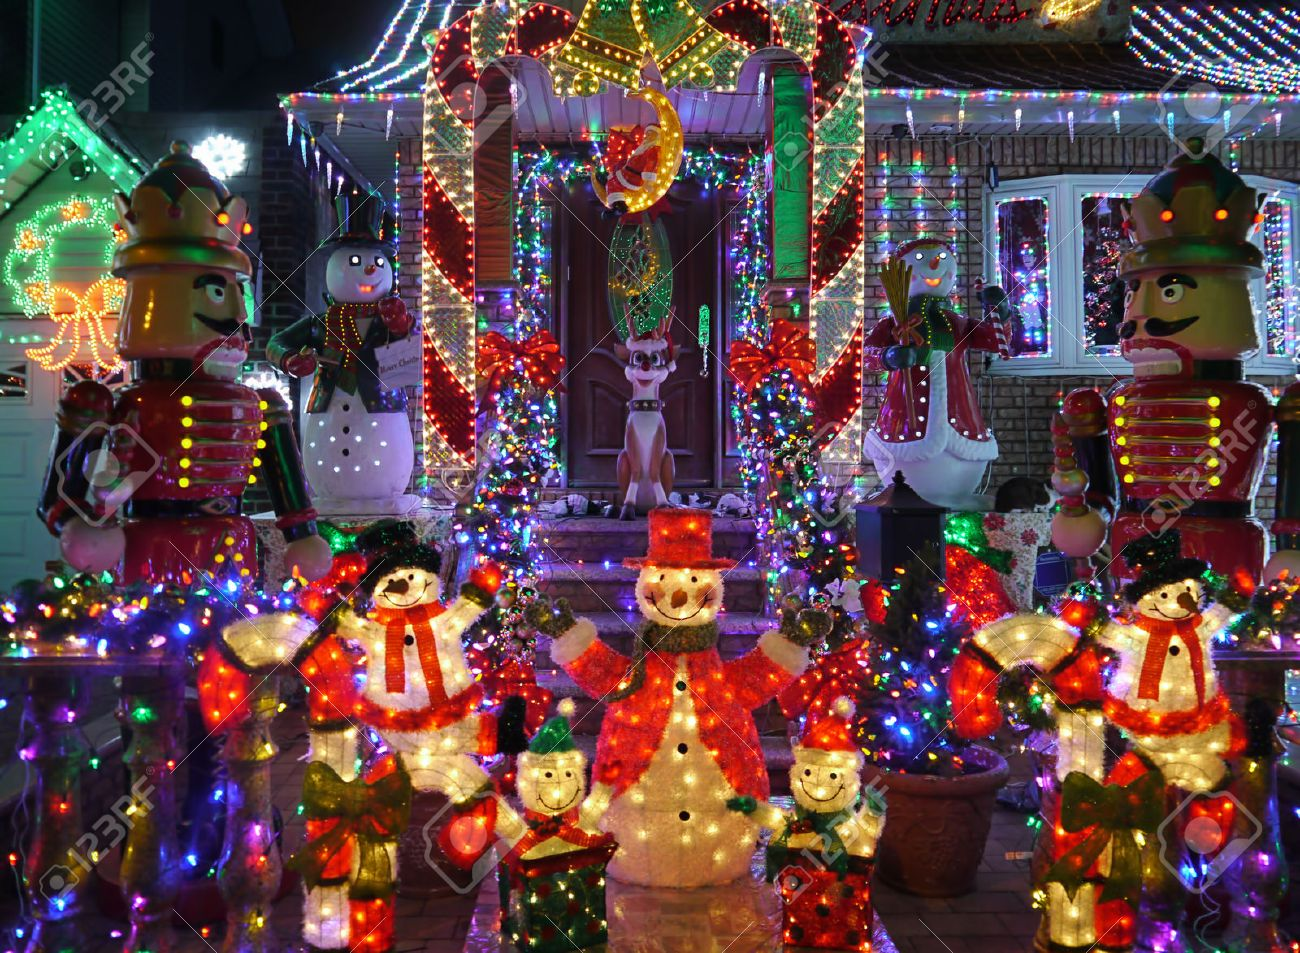 How to decorate house for christmas outdoor - Christmas Outdoor Christmas Decorations Snowman And Nutcracker Lights Up House Stock Photo 44887262